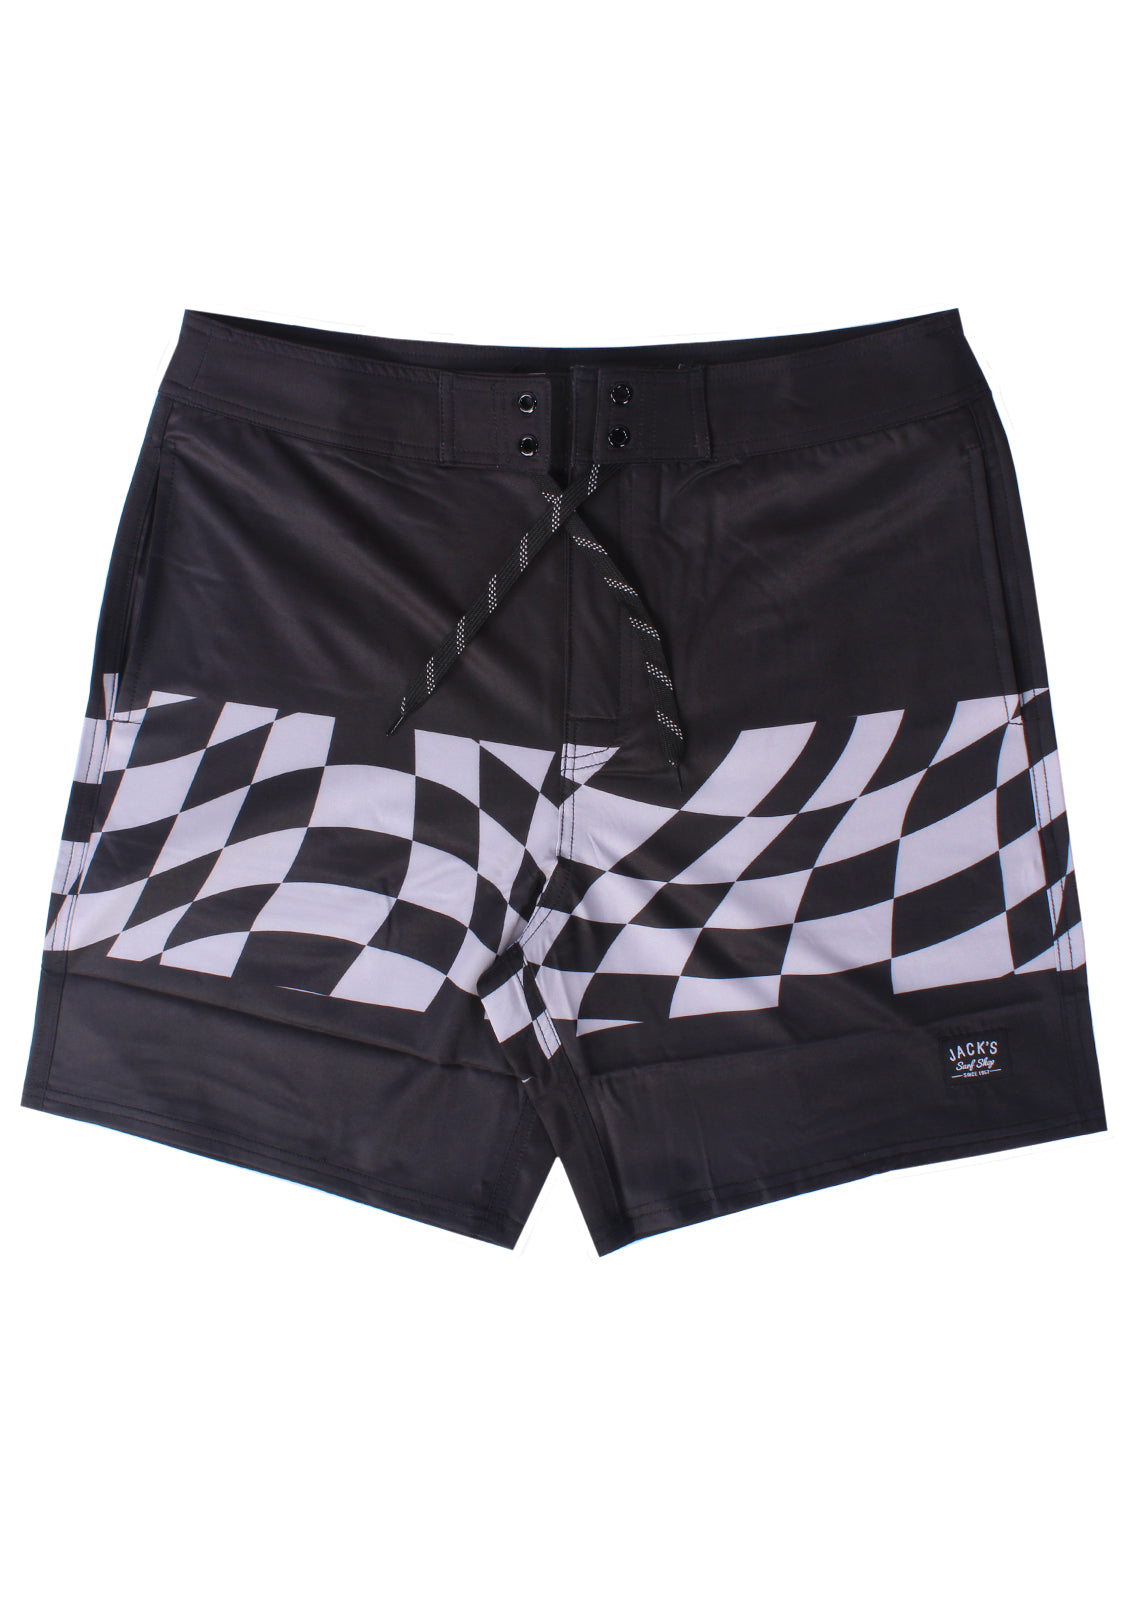 Jacks Surfboard Admiral Boardshort